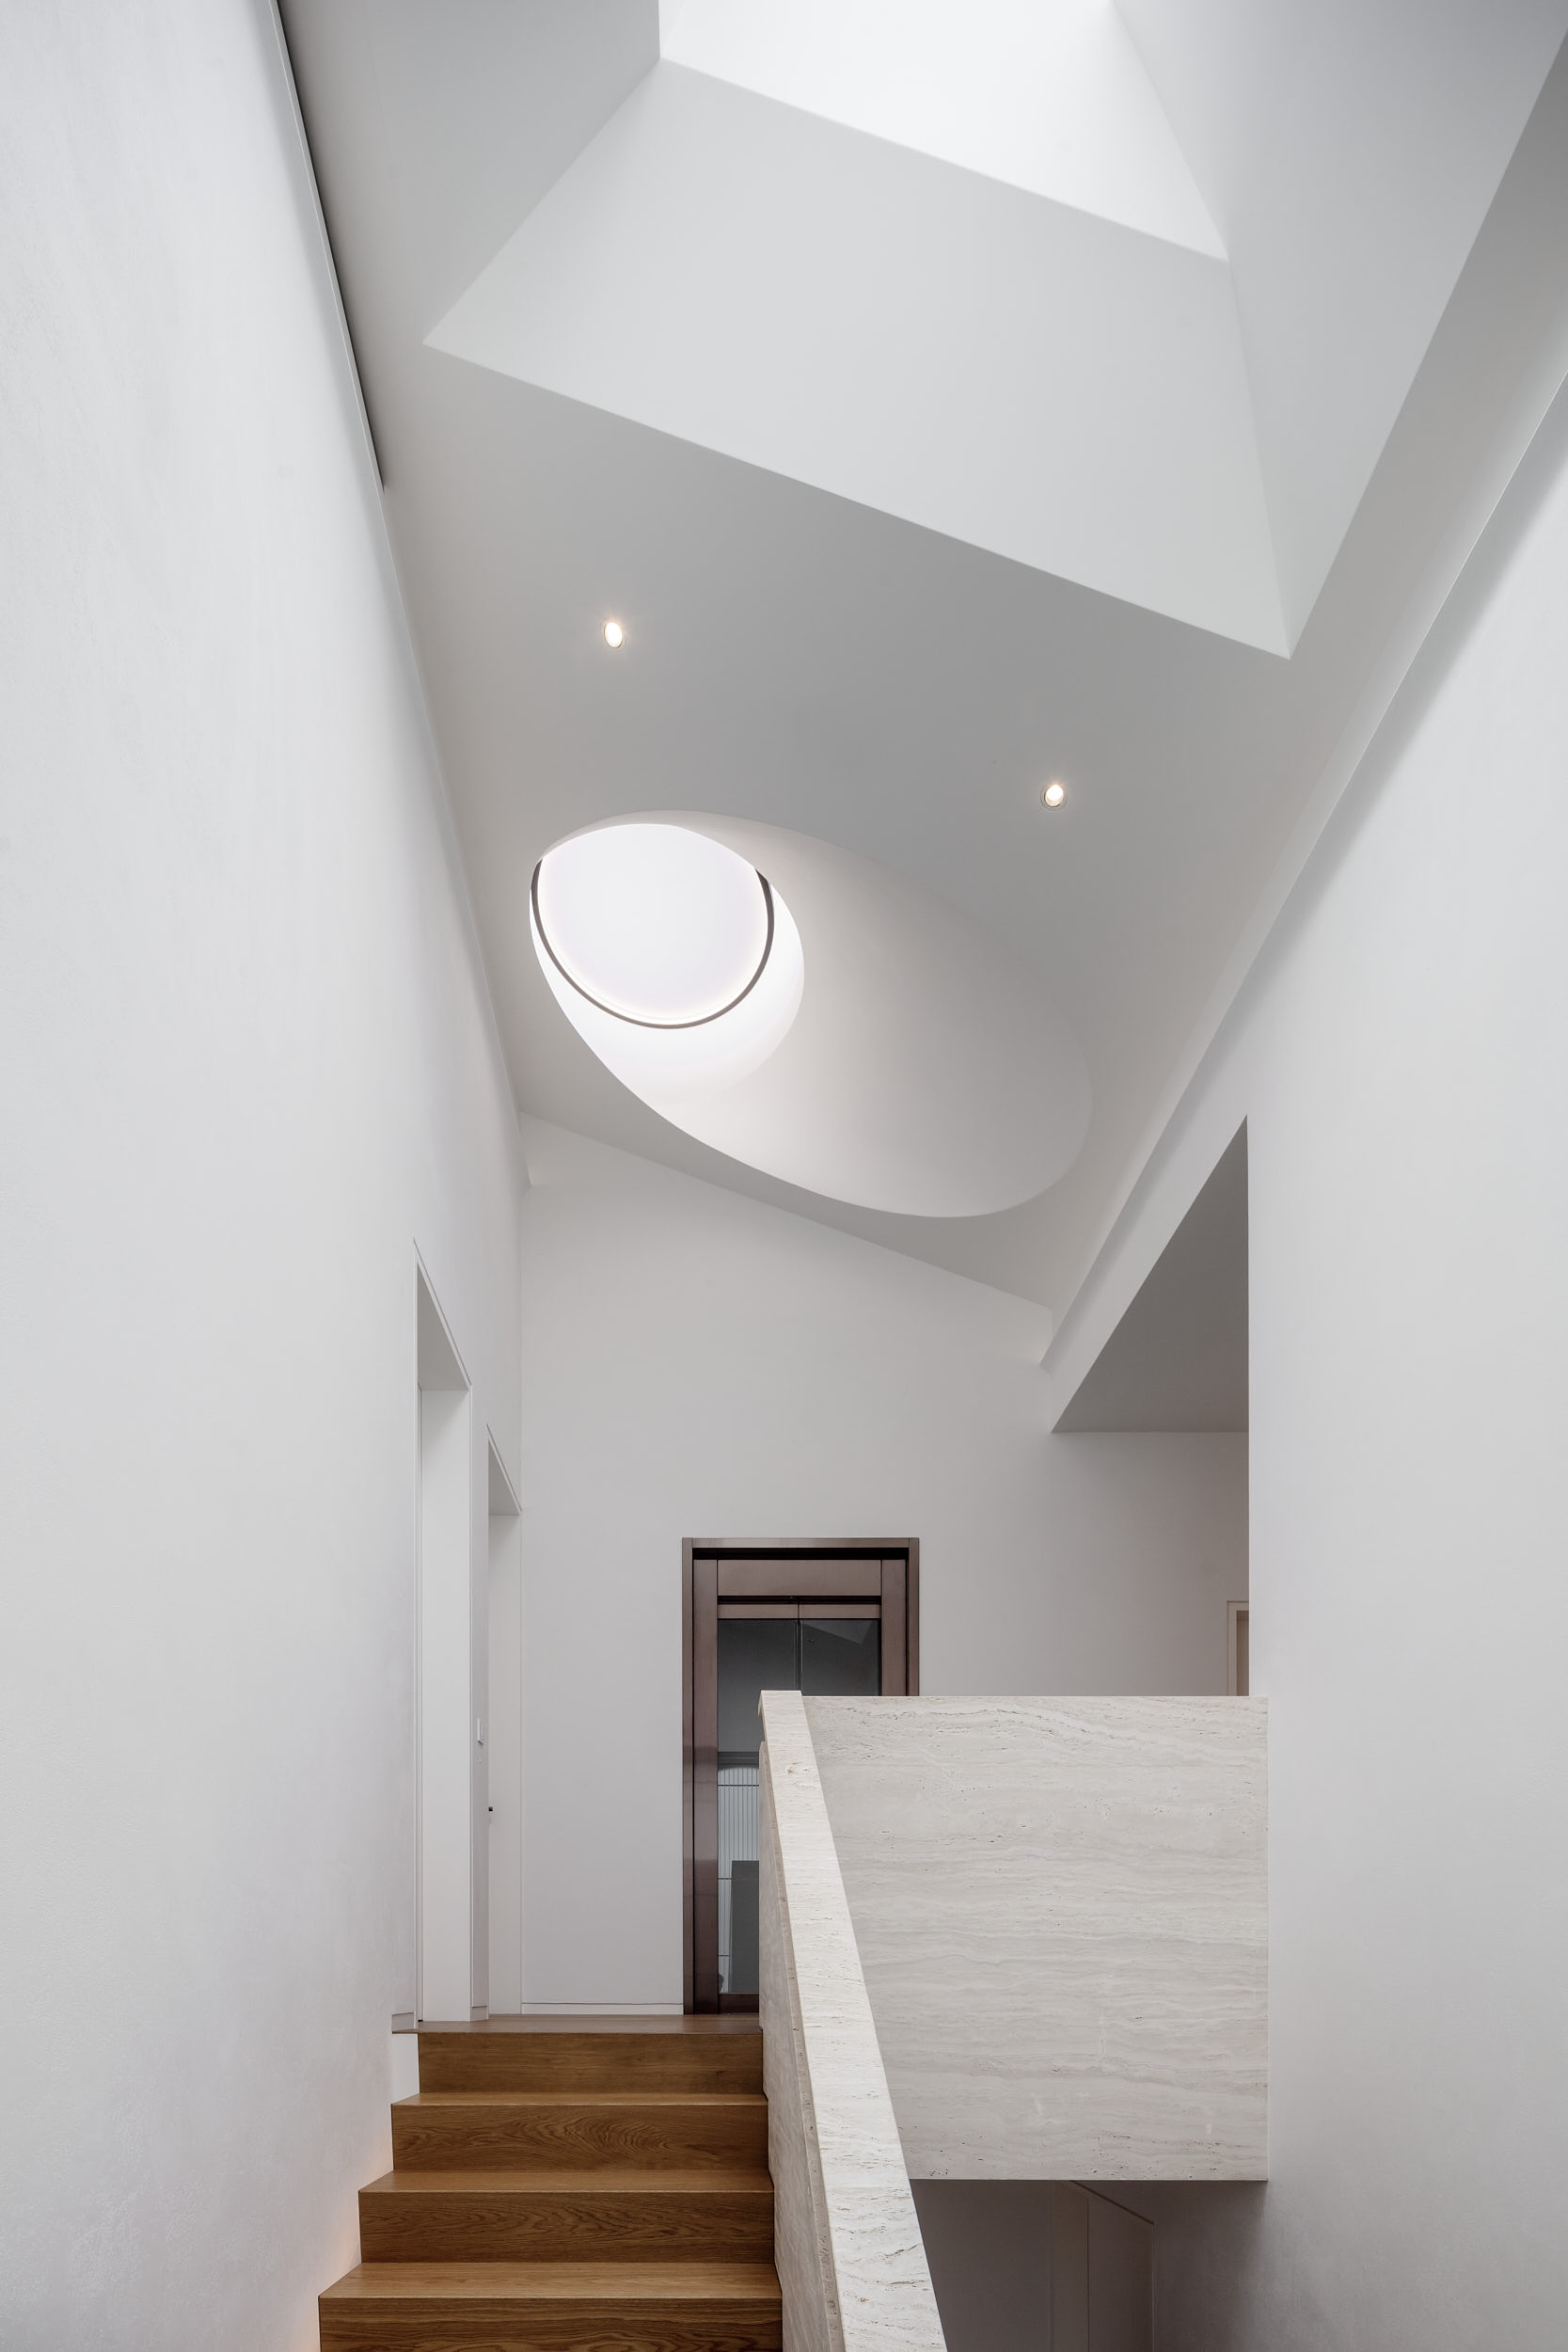 Sculptural rooflight at the top of the stairs floods the space with light.